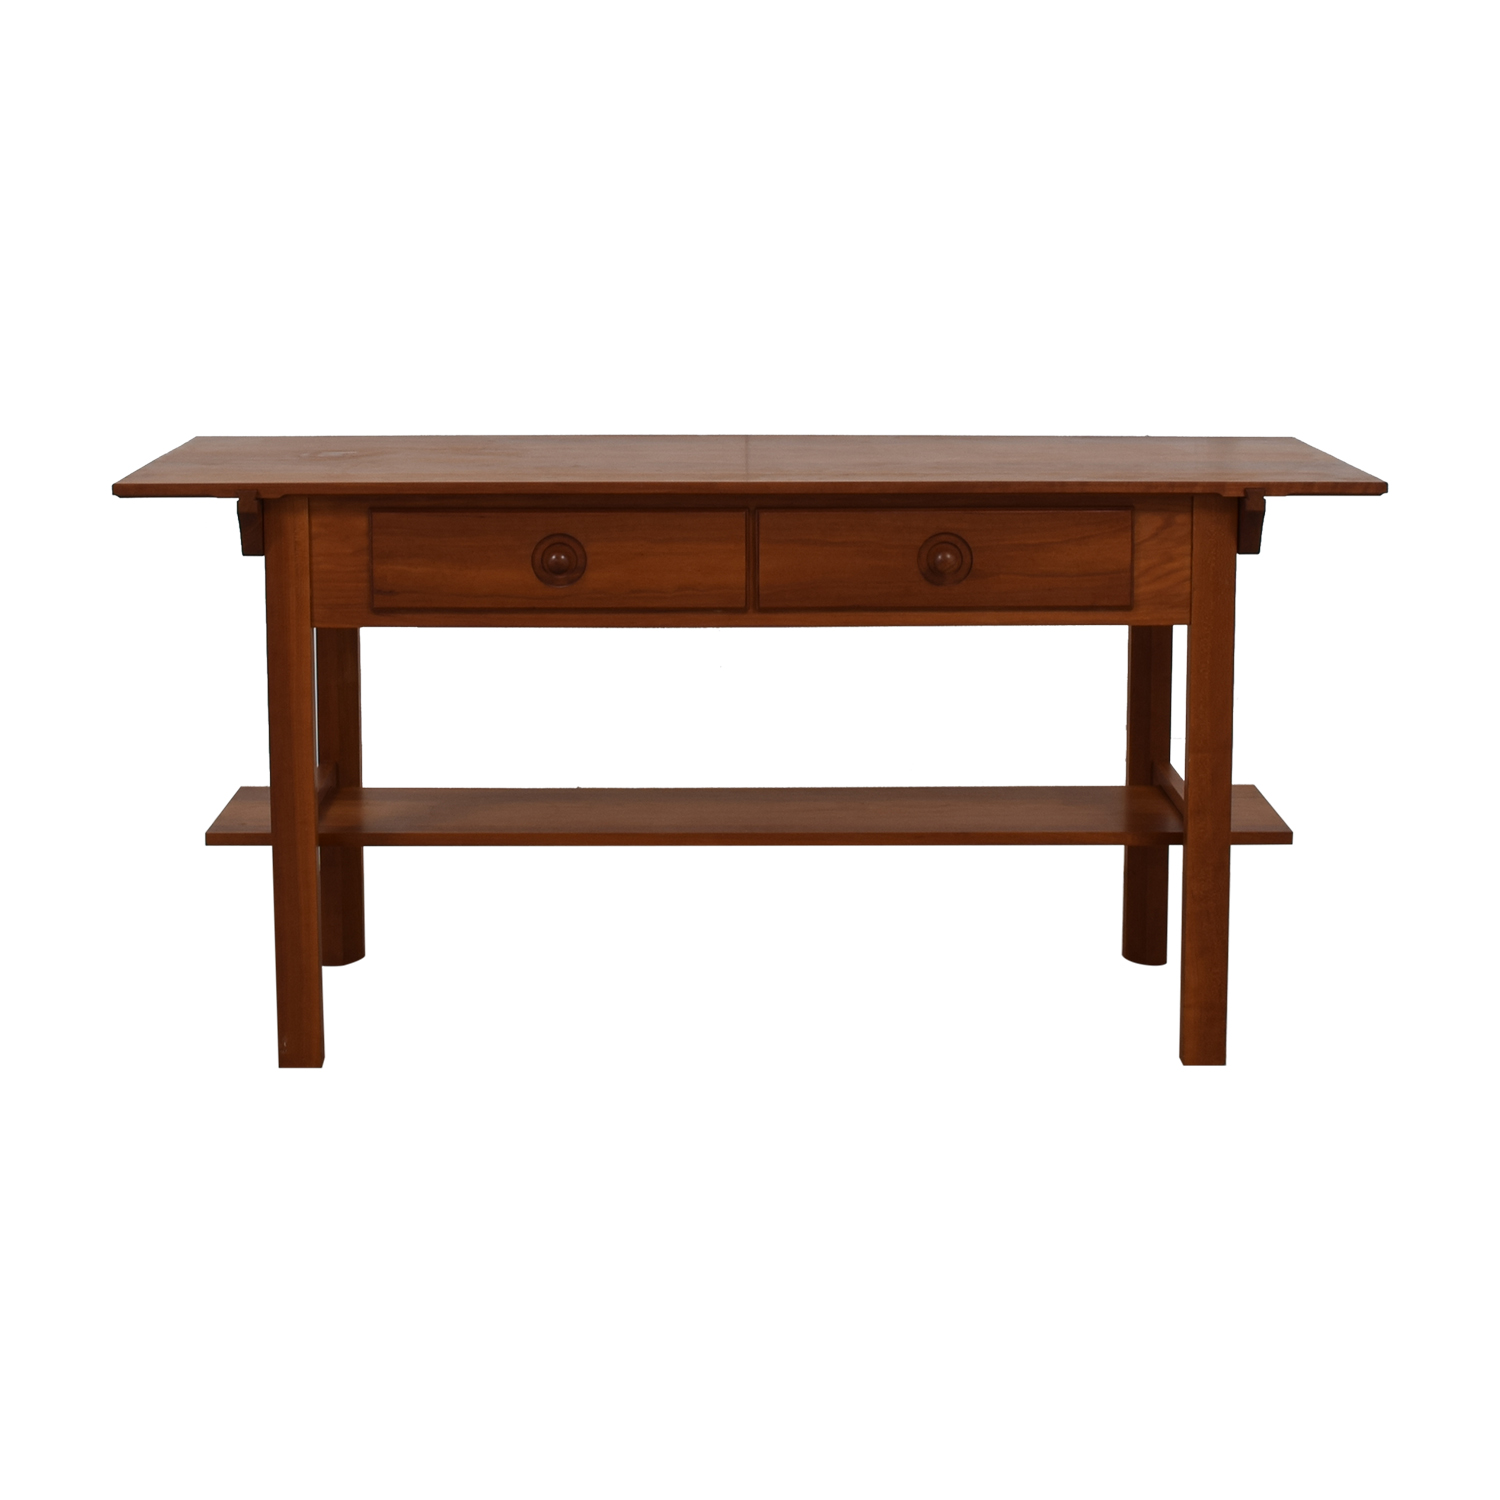 Scott Jordon Wood Two-Drawer Utility Table / Utility Tables